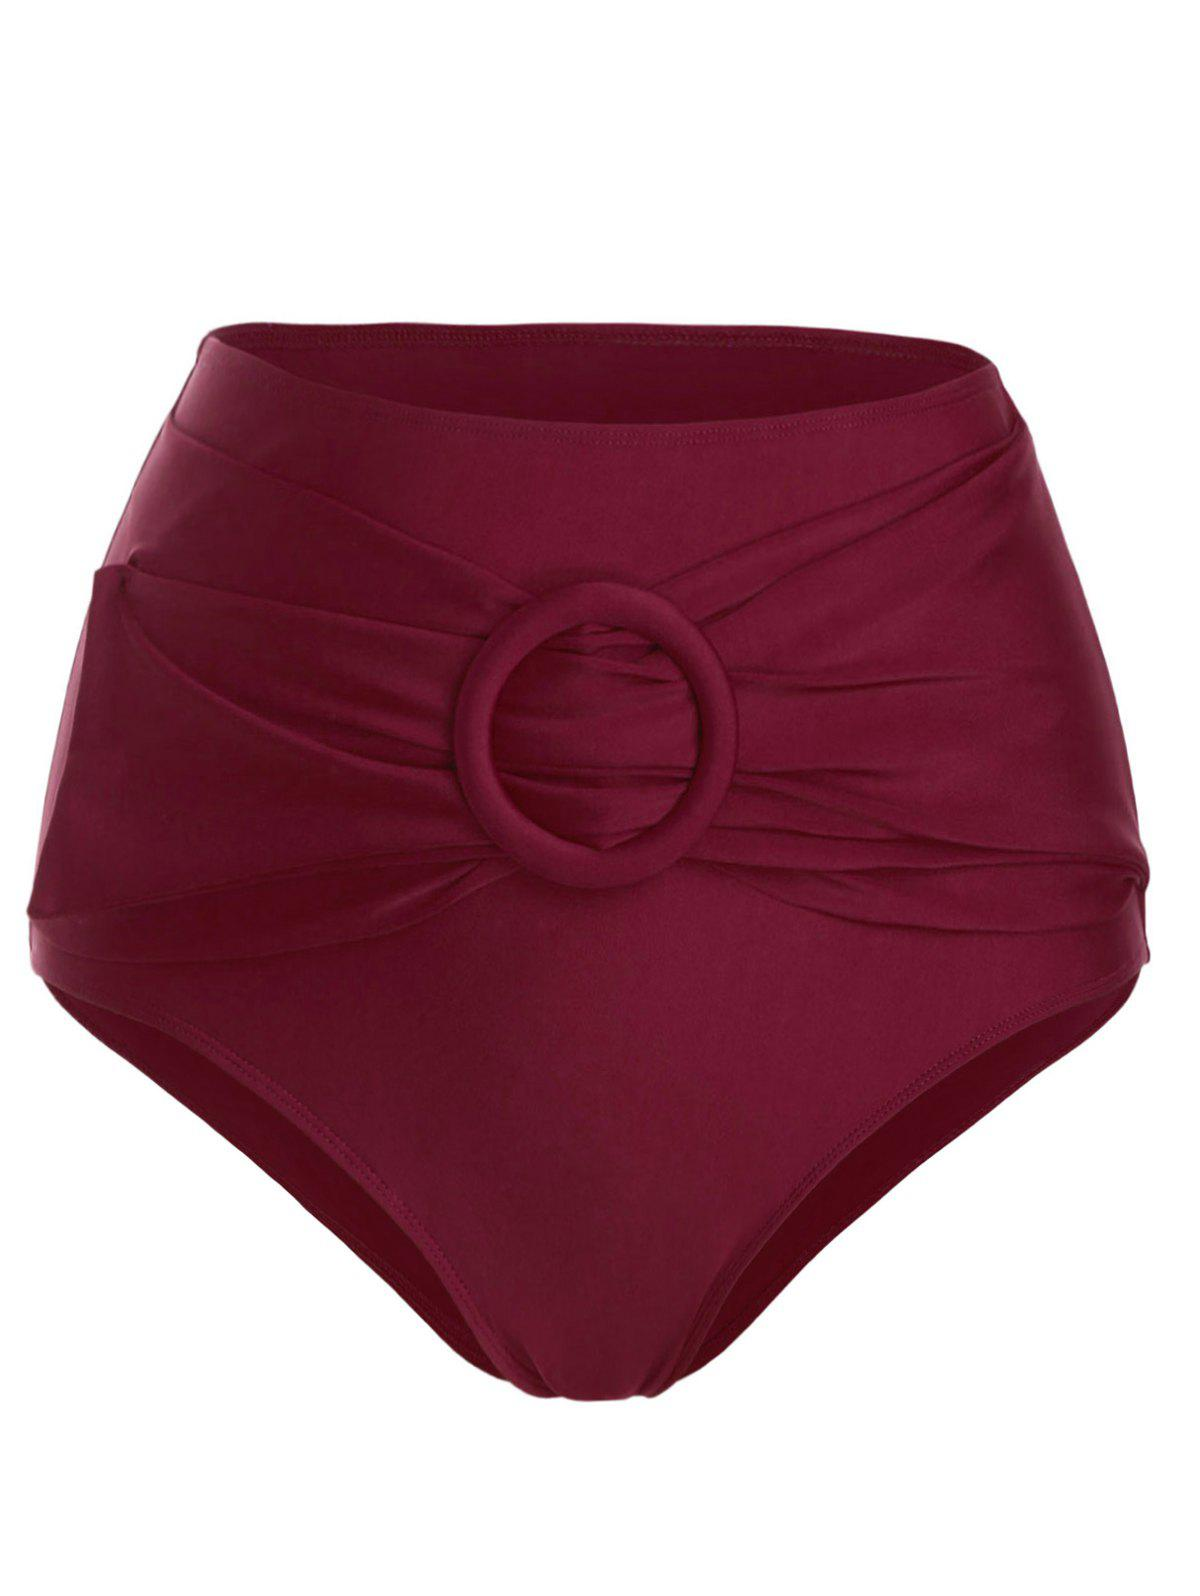 High Waisted O Ring Belted Swim Bottom - RED WINE XL